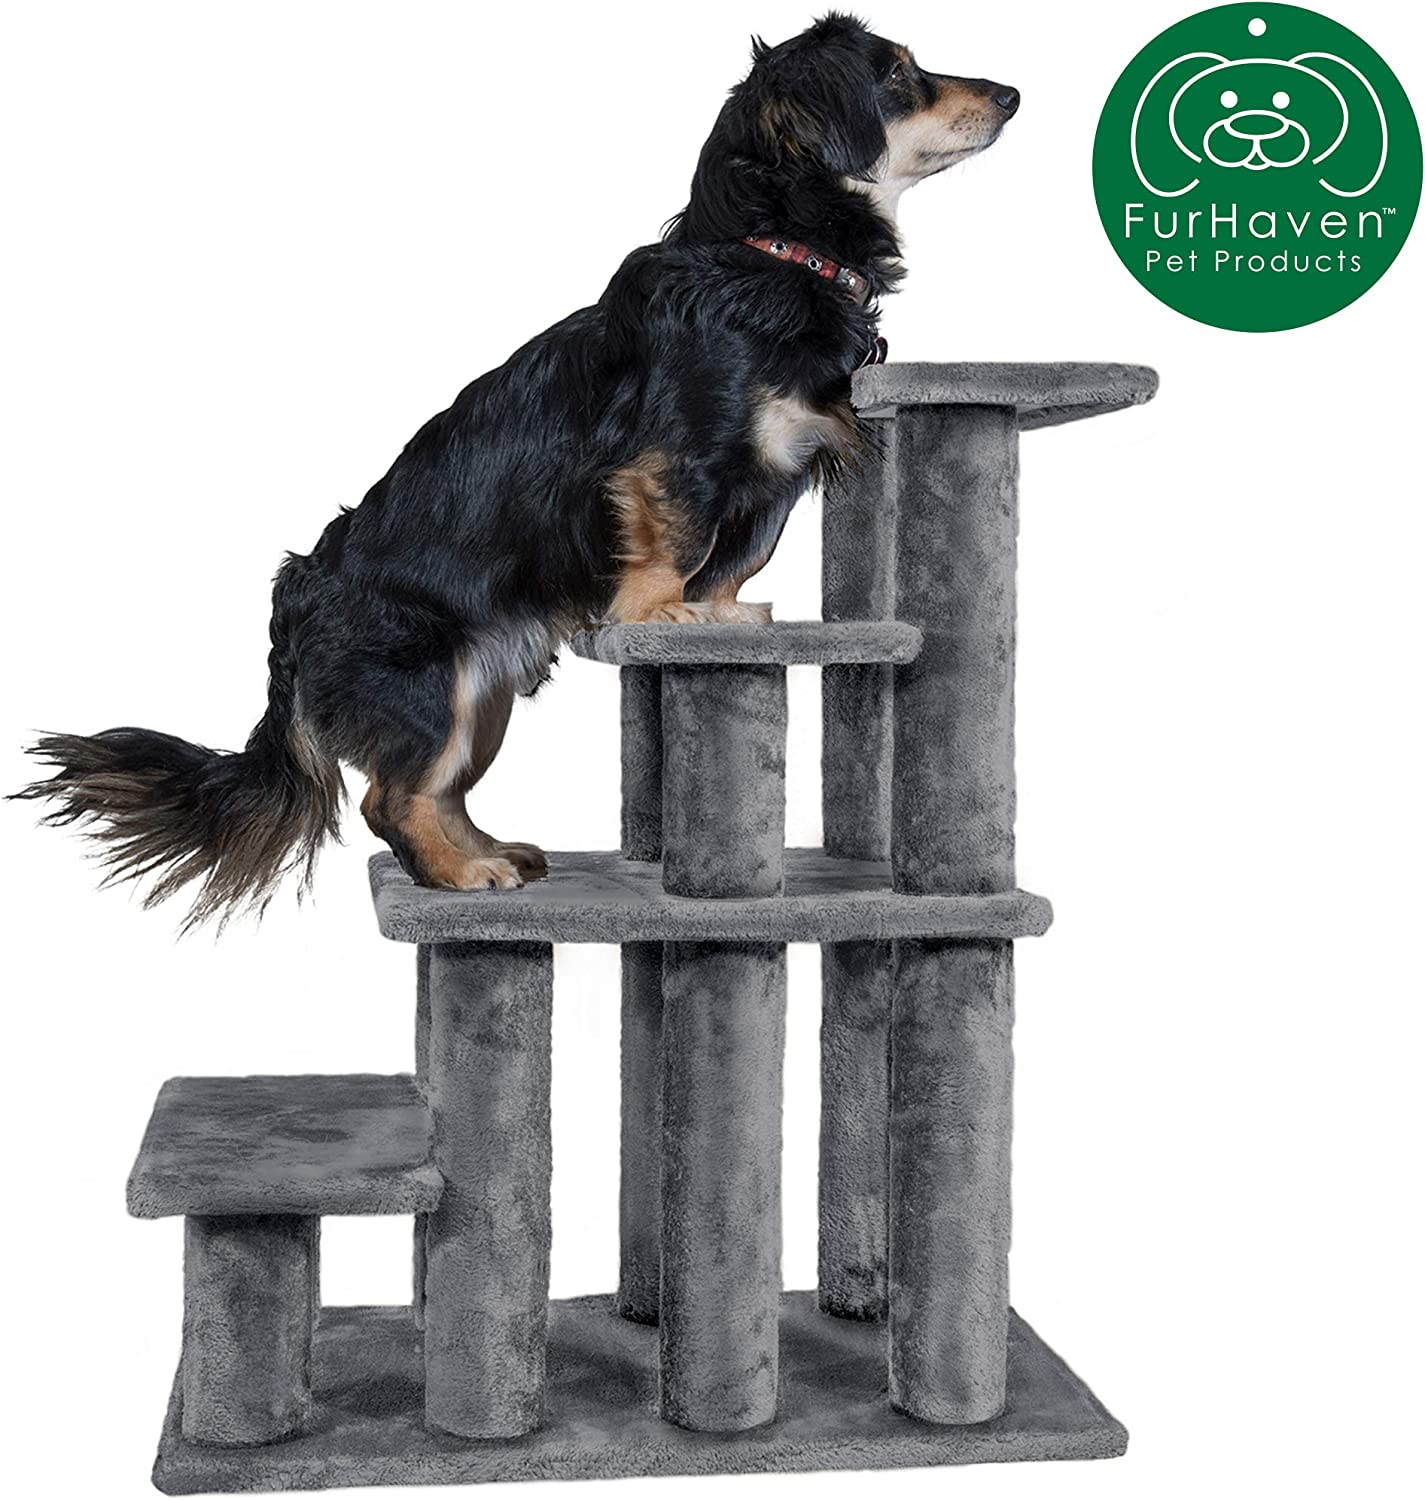 Furhaven Pet Stairs   Steady Paws Easy Multi-Step Furniture Pet Stairs Assist Ramp for Dogs & Cats - Available in Multiple Colors & Sizes